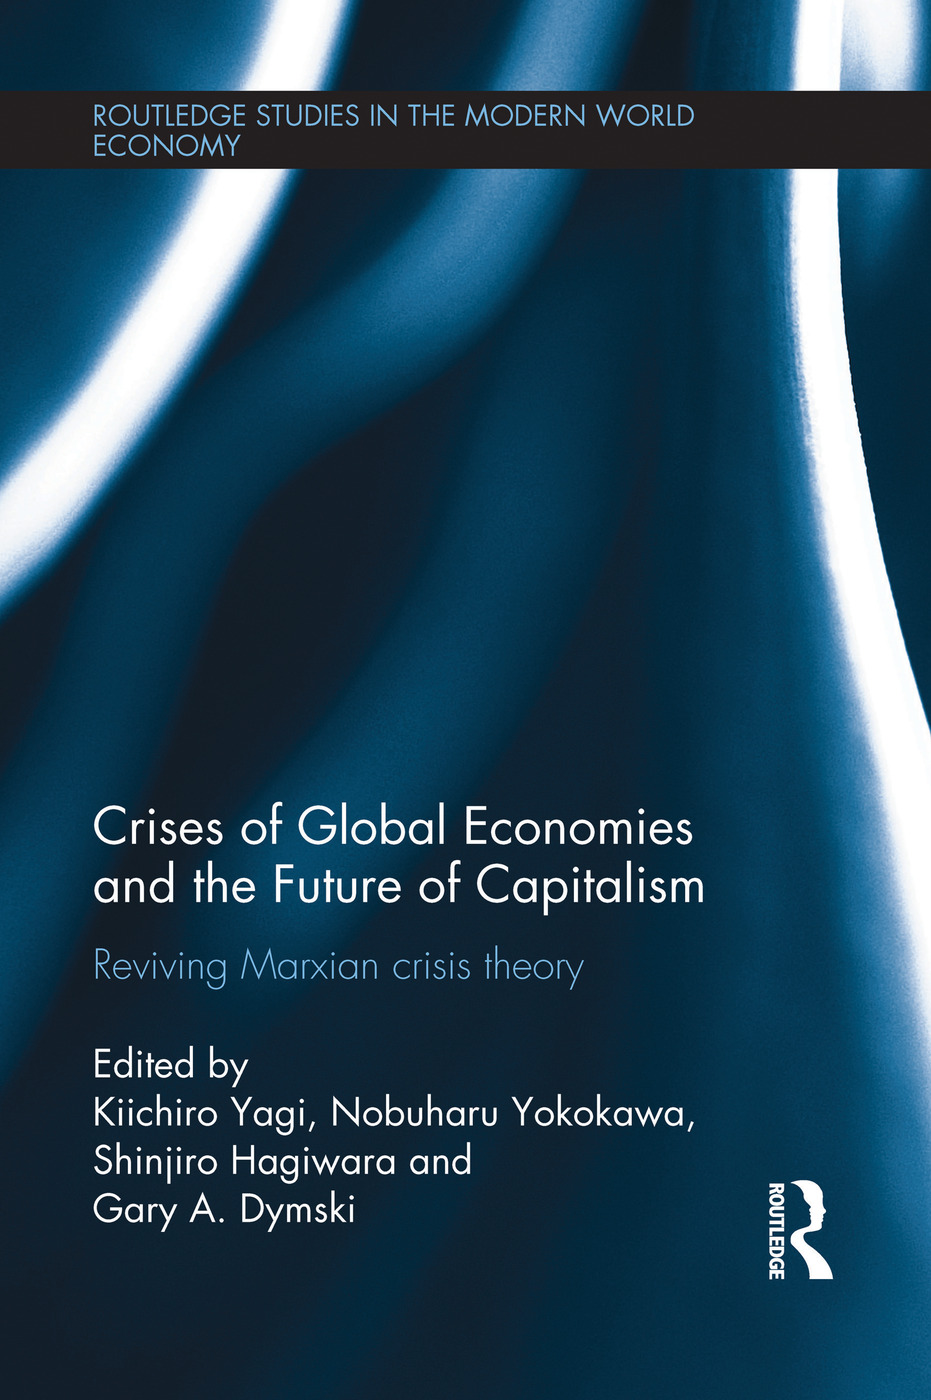 Crises of Global Economy and the Future of Capitalism